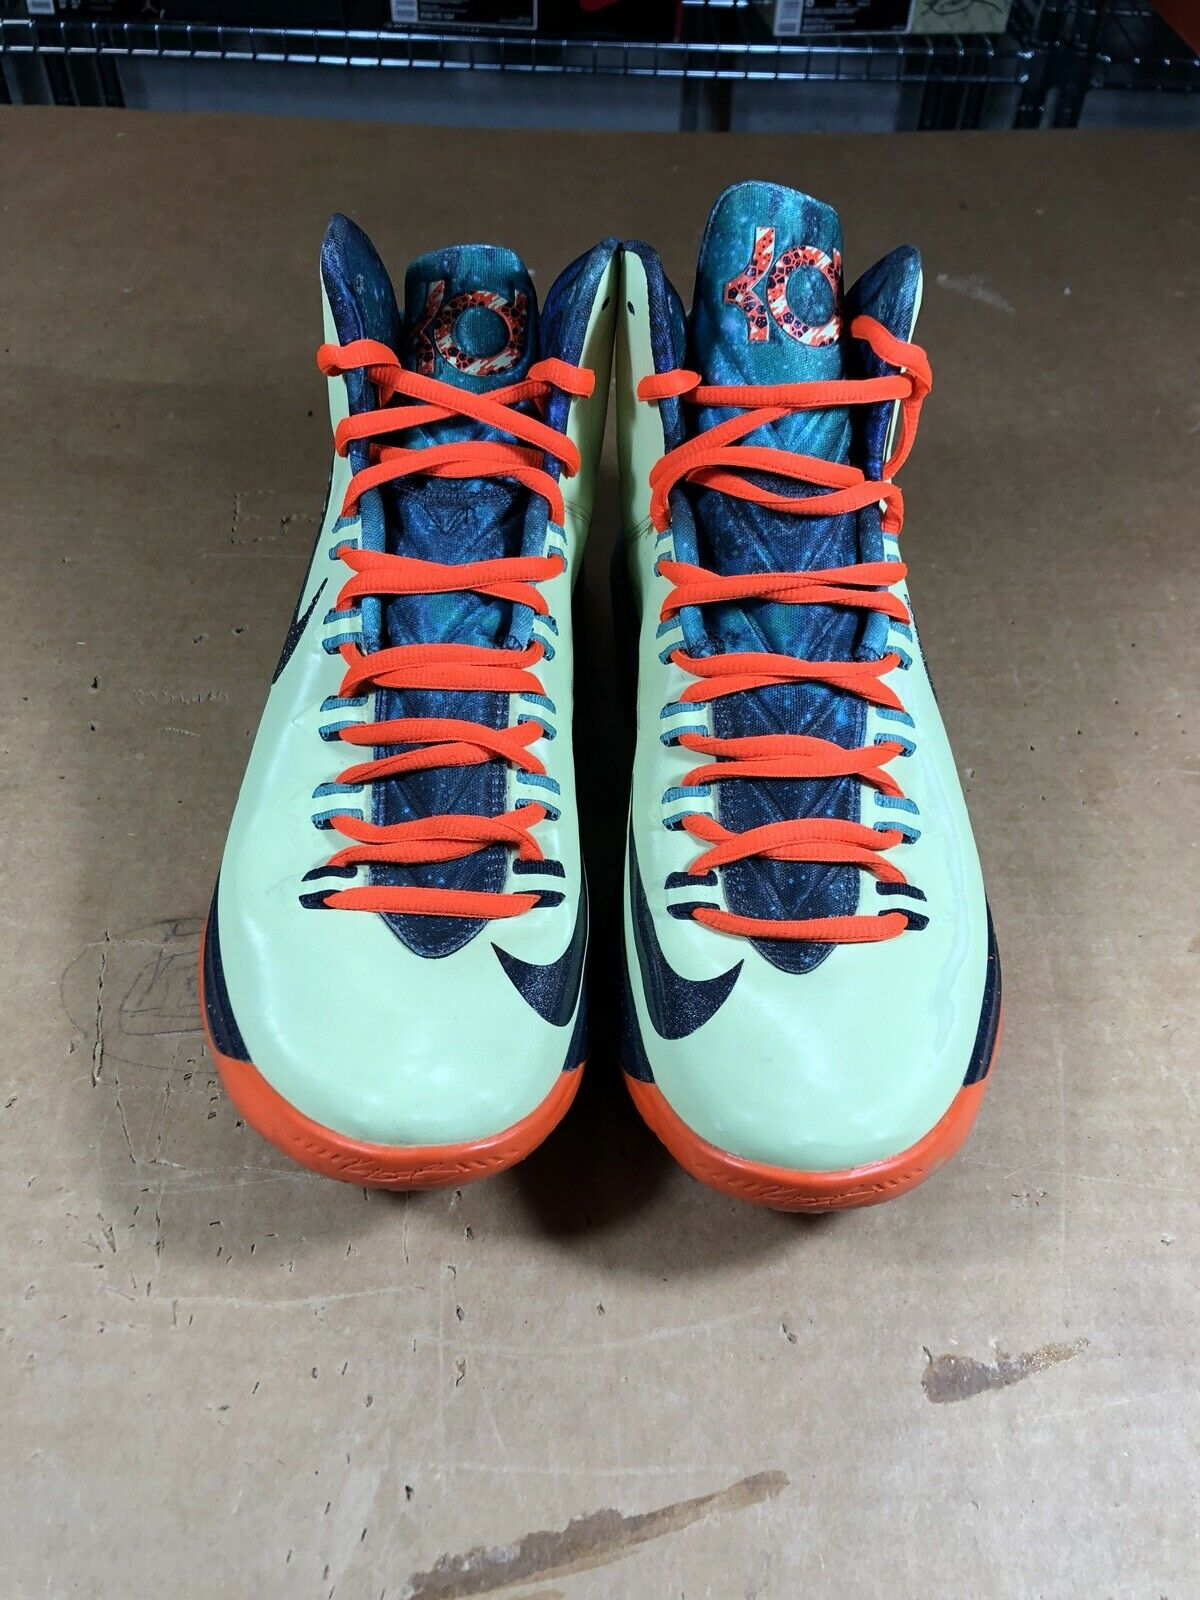 100% Authentic Nike Kd 5 All-Star Area 72 Size 11 583111 300